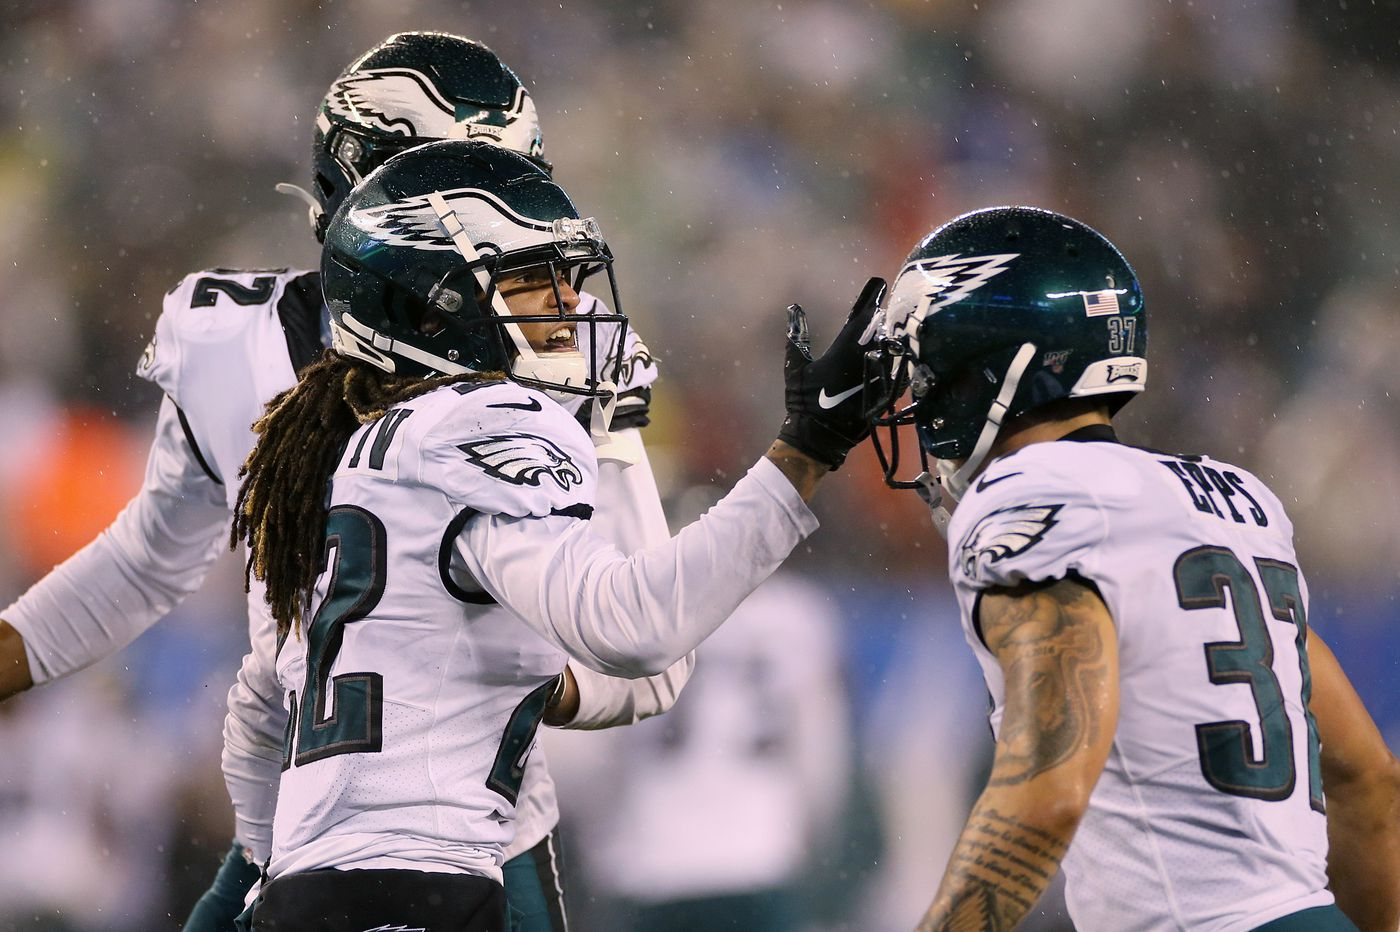 Eagles host Seahawks in NFC wild card playoff game Sunday at 4:40 p.m.